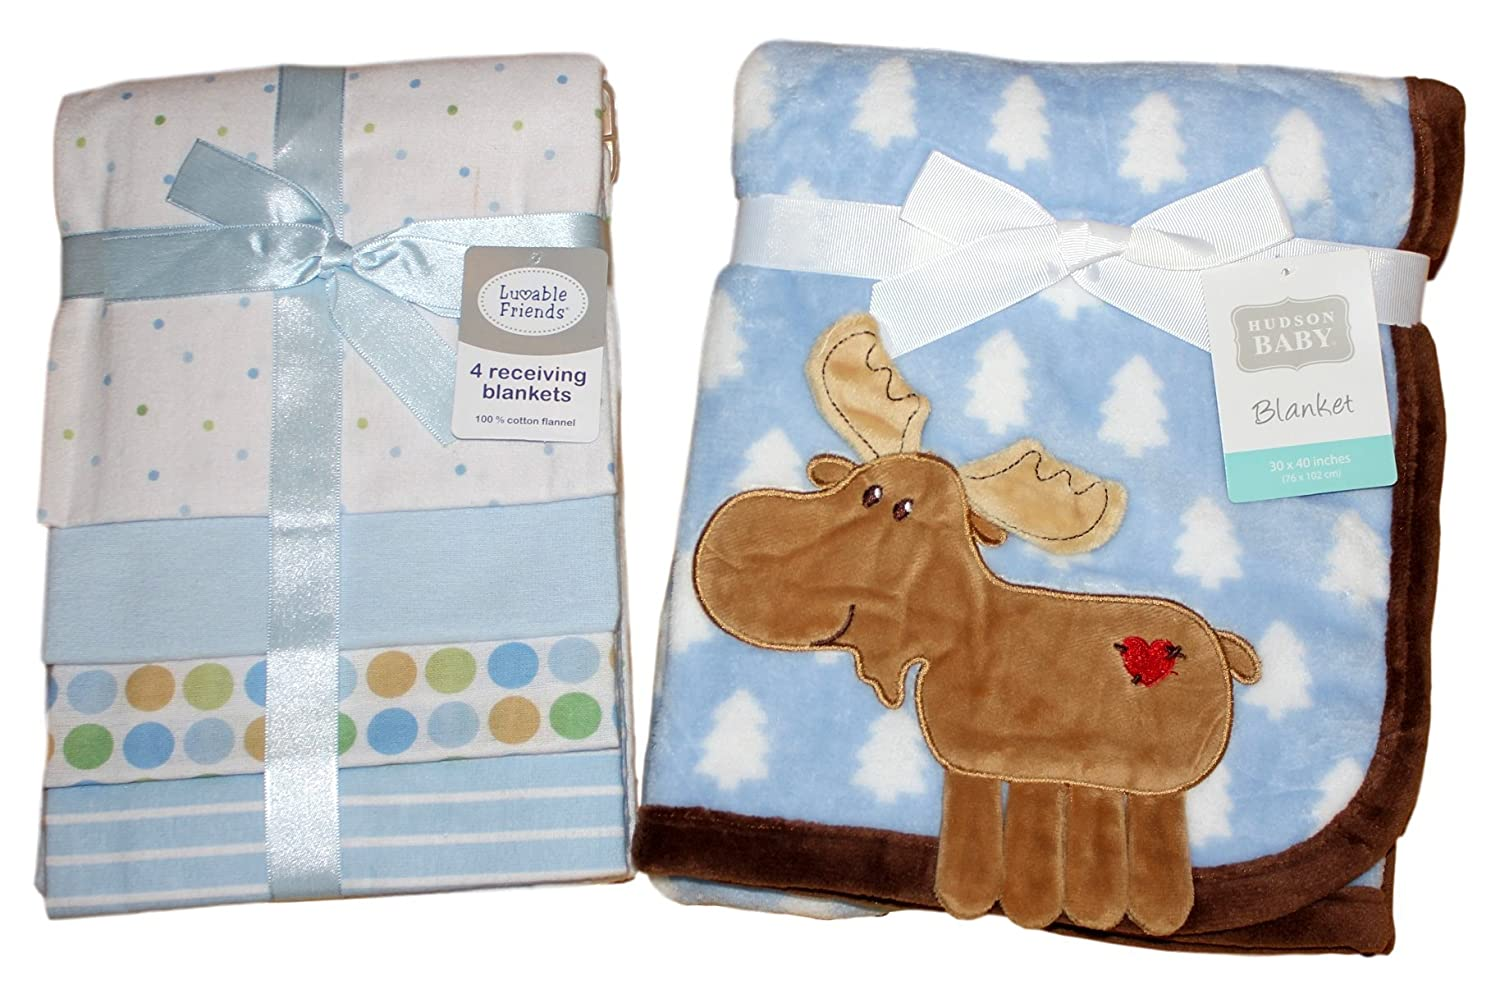 Hudson Baby Coral Fleece 3D Moose Blanket, Blue with Luvable Friends Flannel Receiving Blankets, Blue, 4 Count - Perfect Bundle for a Rimon